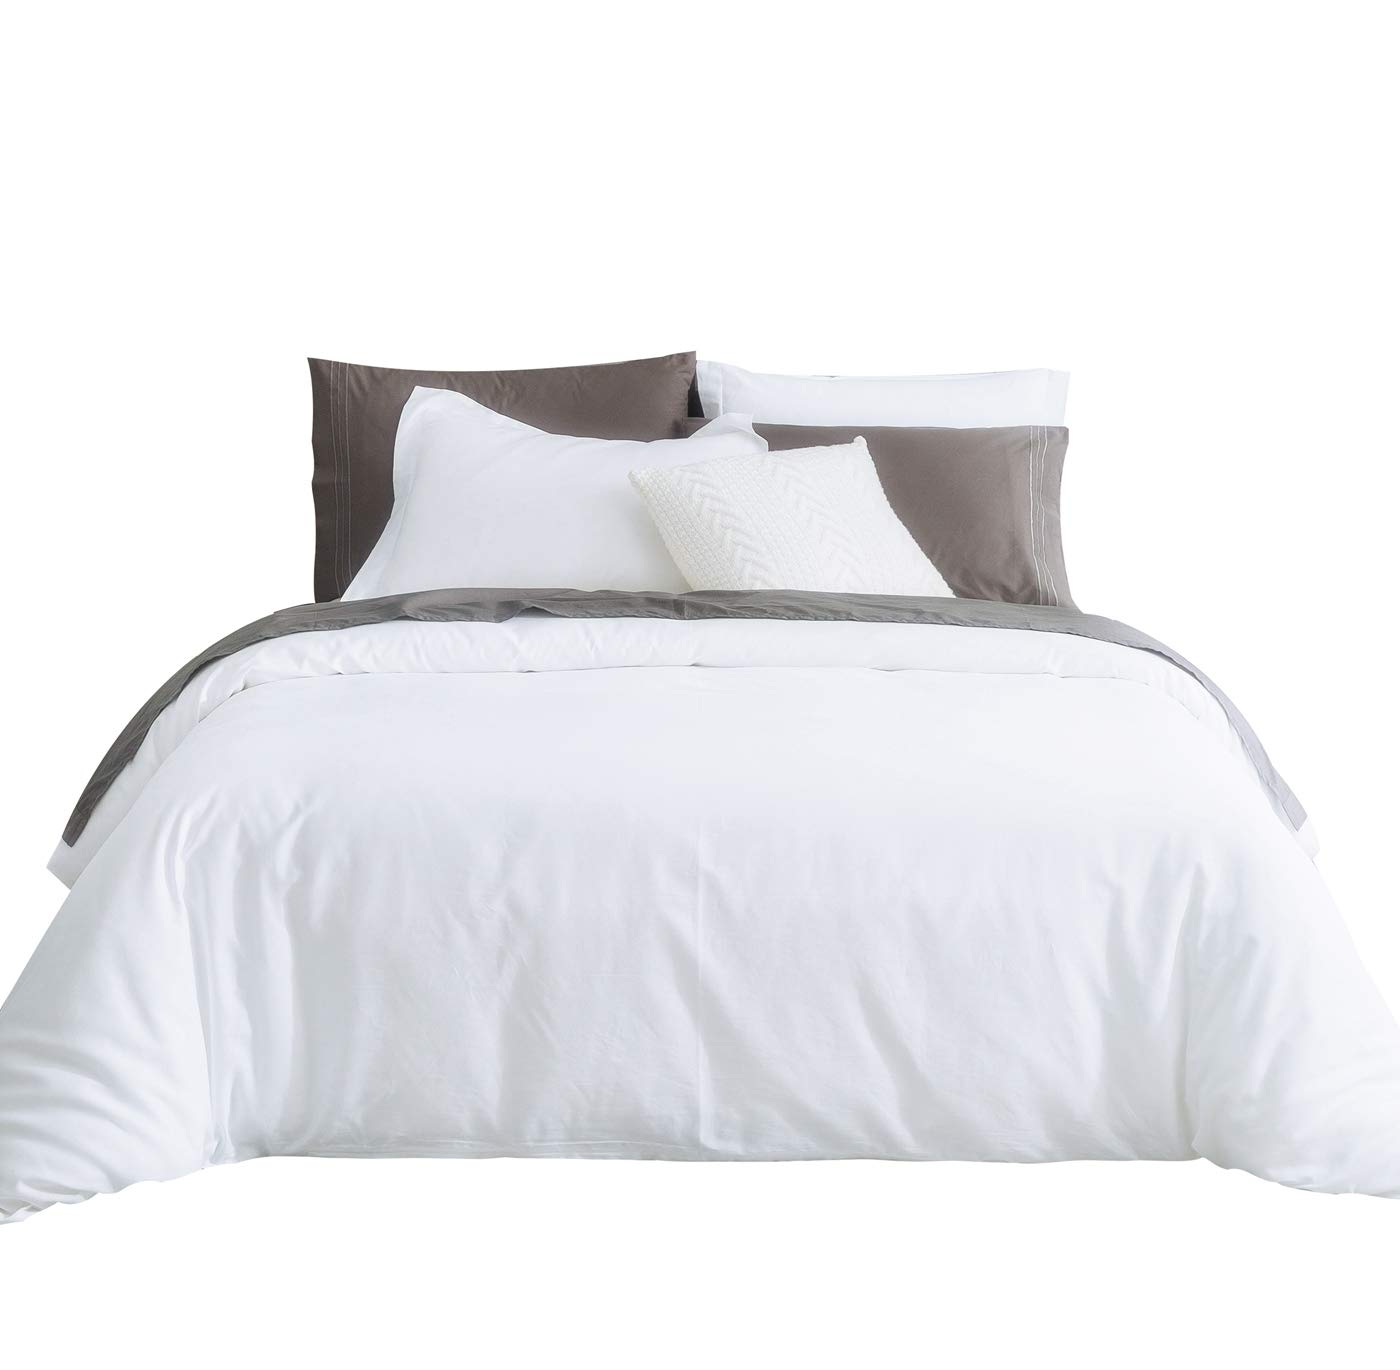 SUSYBAO 3 Pieces Duvet Cover Set 100% Natural Cotton King Size 1 Duvet Cover 2 Pillow Shams Solid White Luxury Quality Super Soft Breathable Hypoallergenic Lightweight Durable Bedding with Zipper Ties